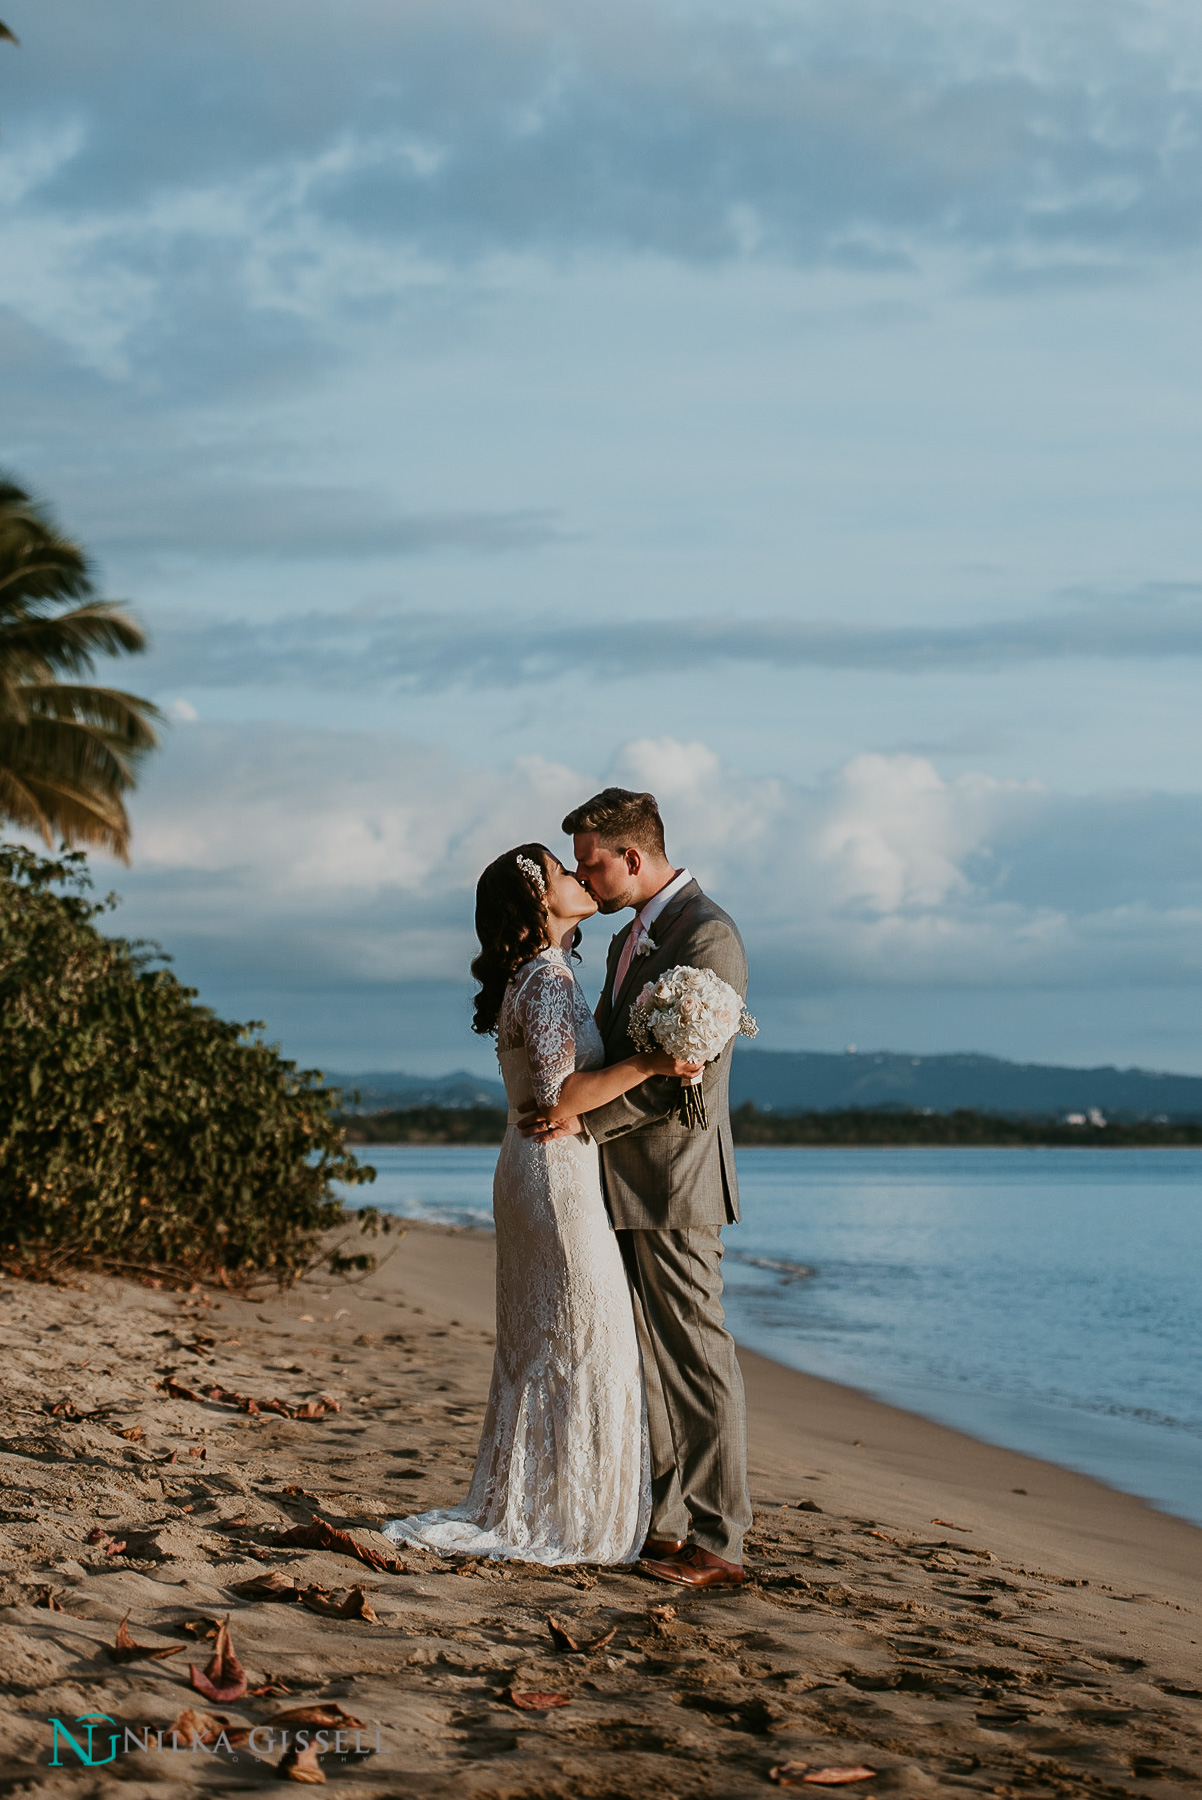 Benefits of an Intimate Destination Wedding in Puerto Rico